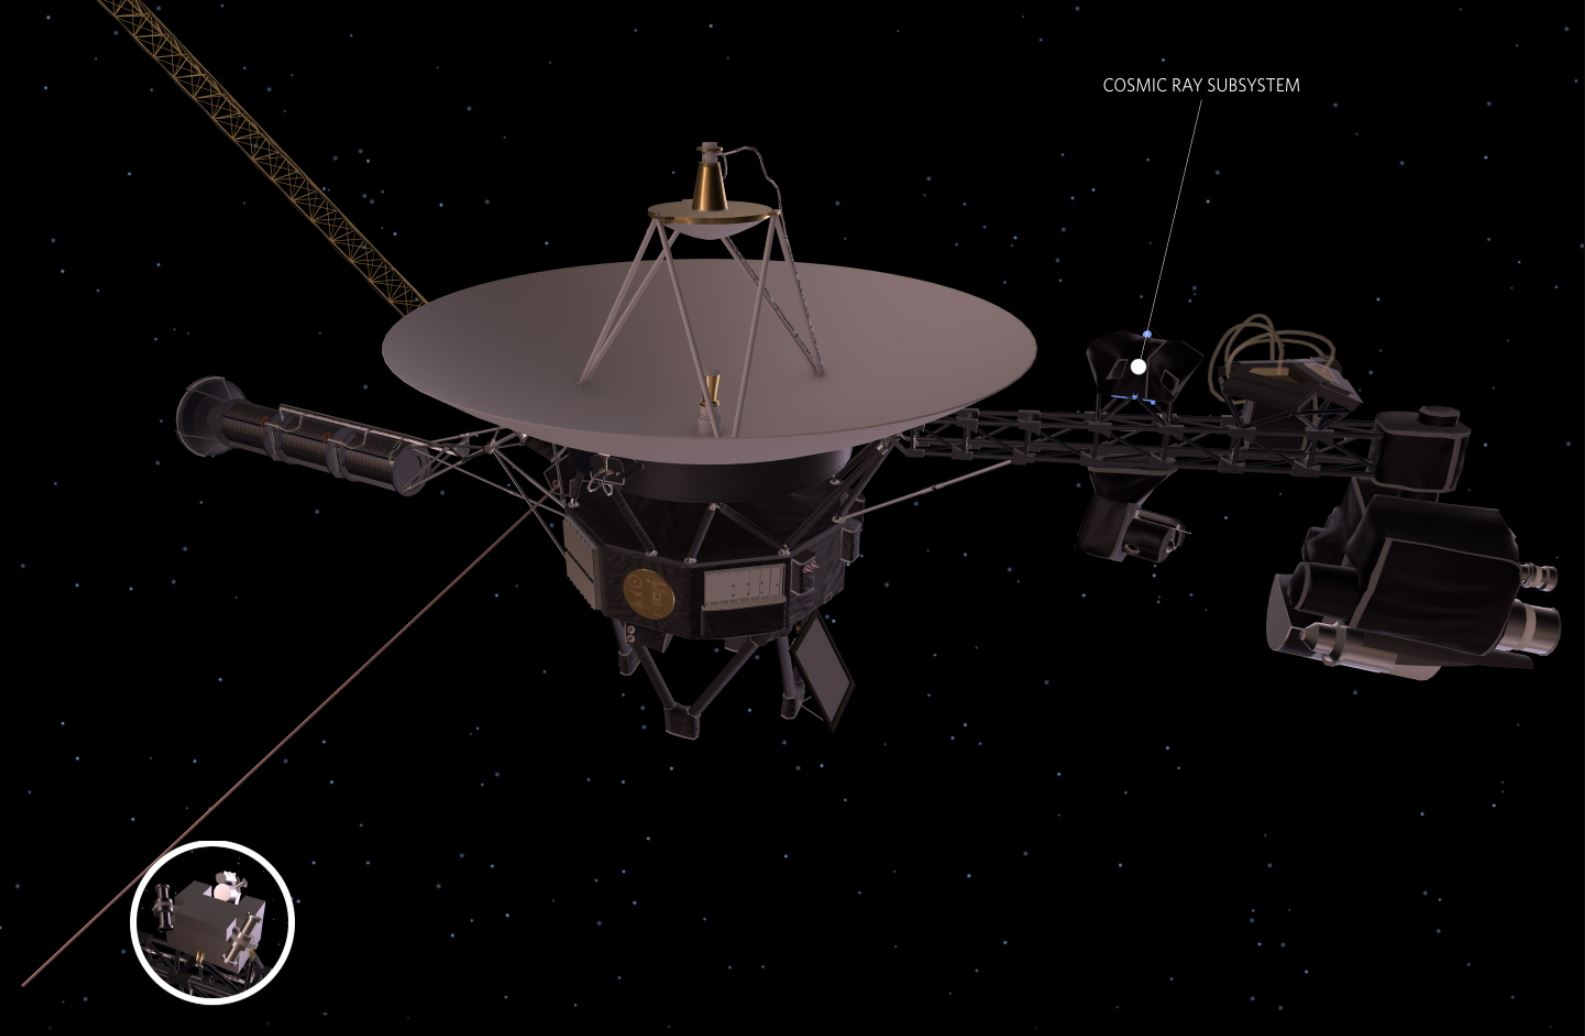 This artist's concept depicts one of NASA's Voyager spacecraft, including the location of the cosmic ray subsystem (CRS) instrument. Both Voyagers launched with operating CRS instruments. - Image Credits: Credits: NASA/JPL-Caltech